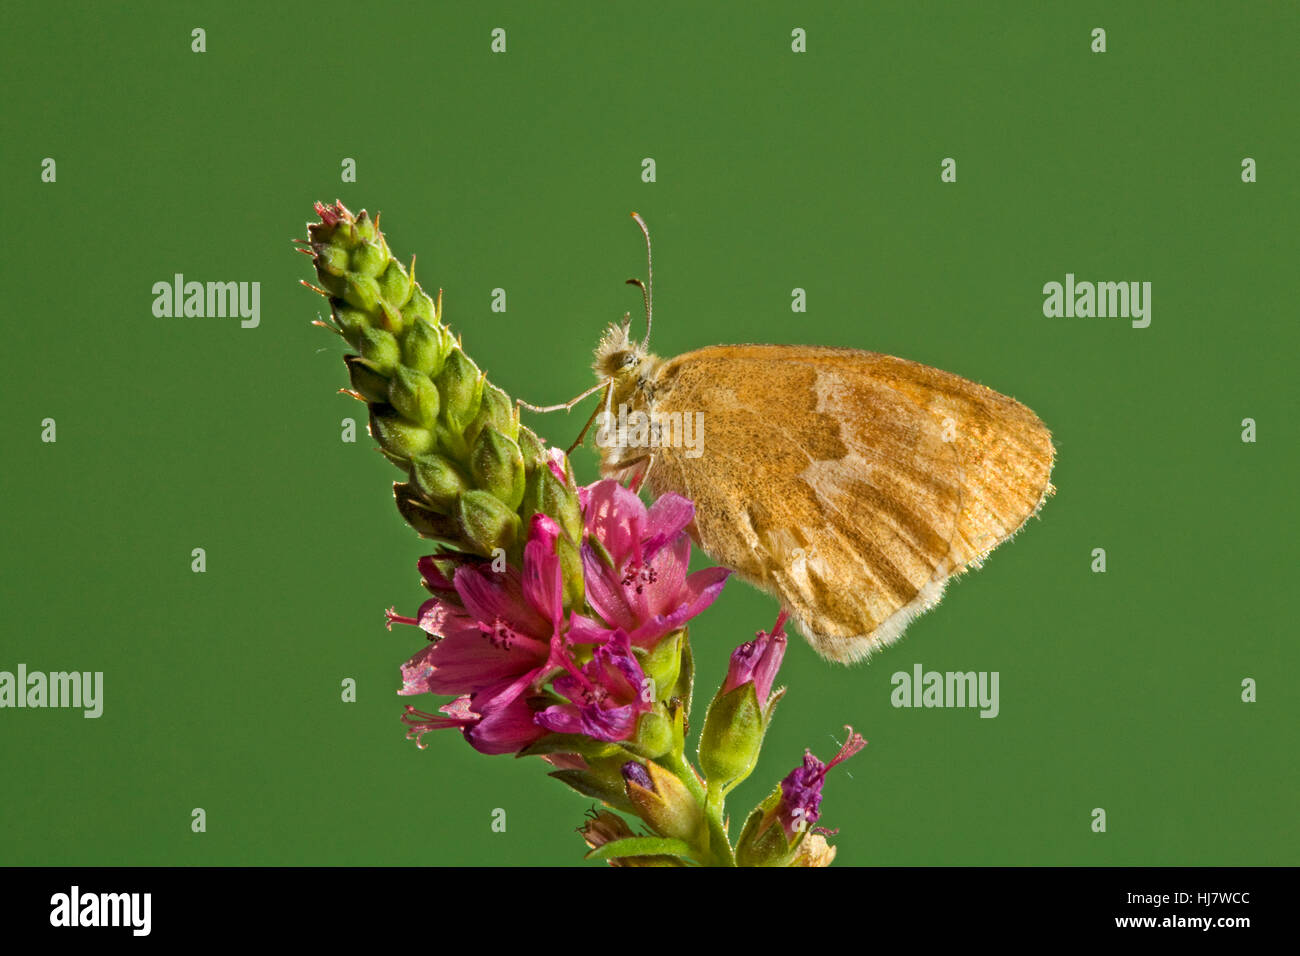 An Ochre Ringlet butterfly, Coenonympha tullia insulana, on a wildflower. - Stock Image